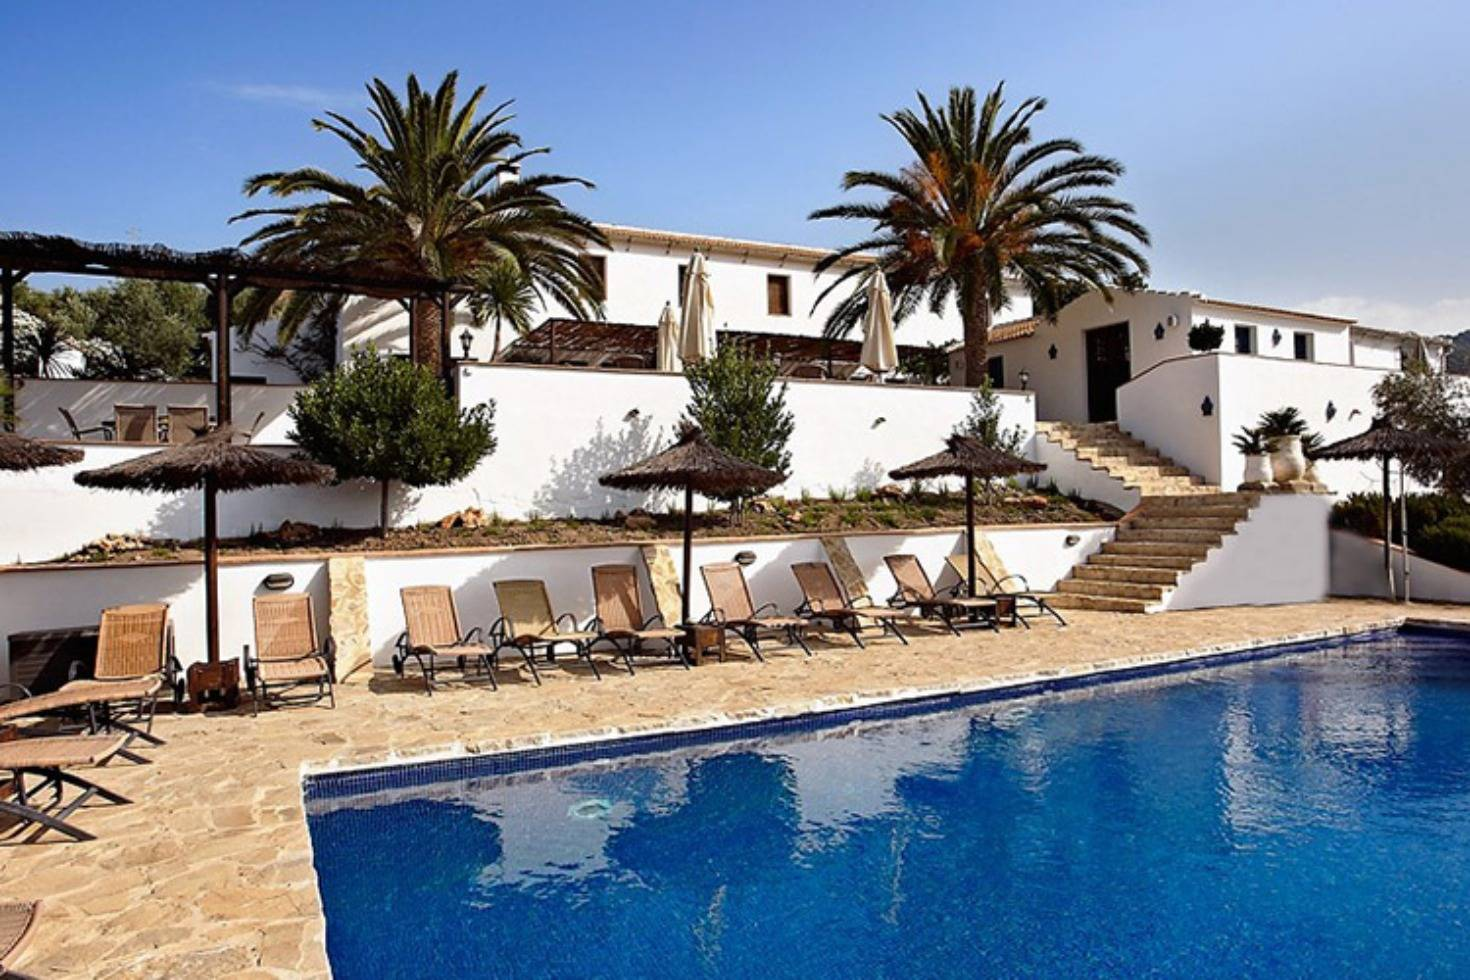 A pool next to a palm tree in front of a building at Casa Rural El Olivar.